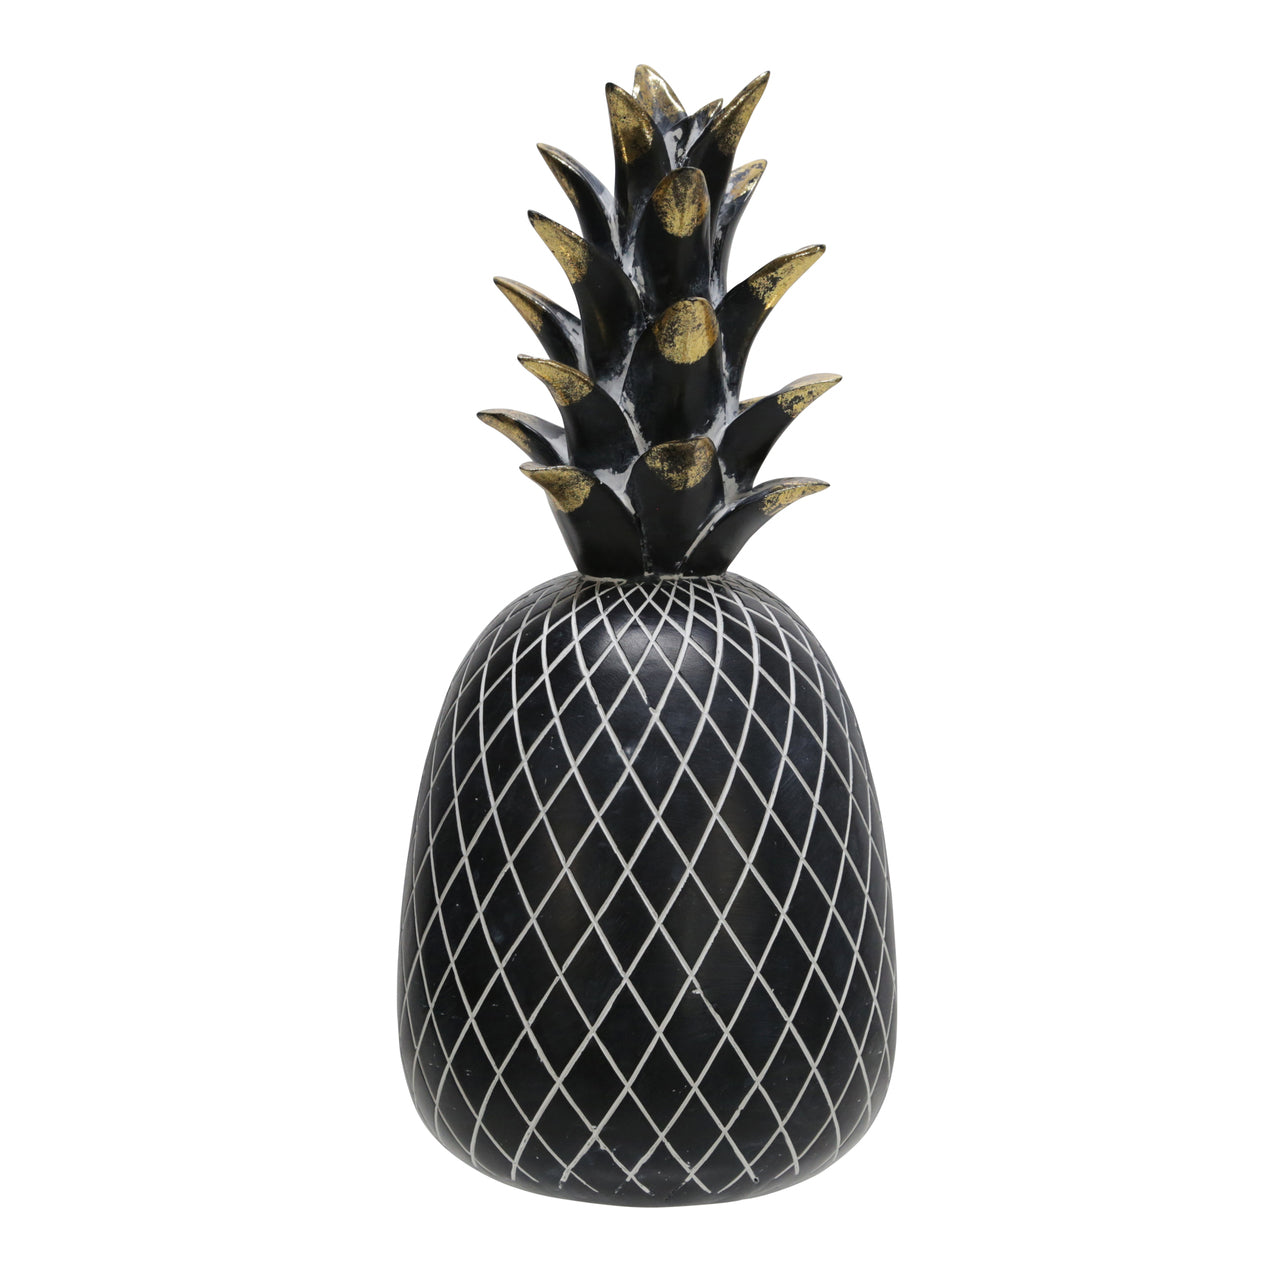 "POLYRESIN 12"" PINEAPPLE DECOR, BLACK/GOLD - Casa Muebles"